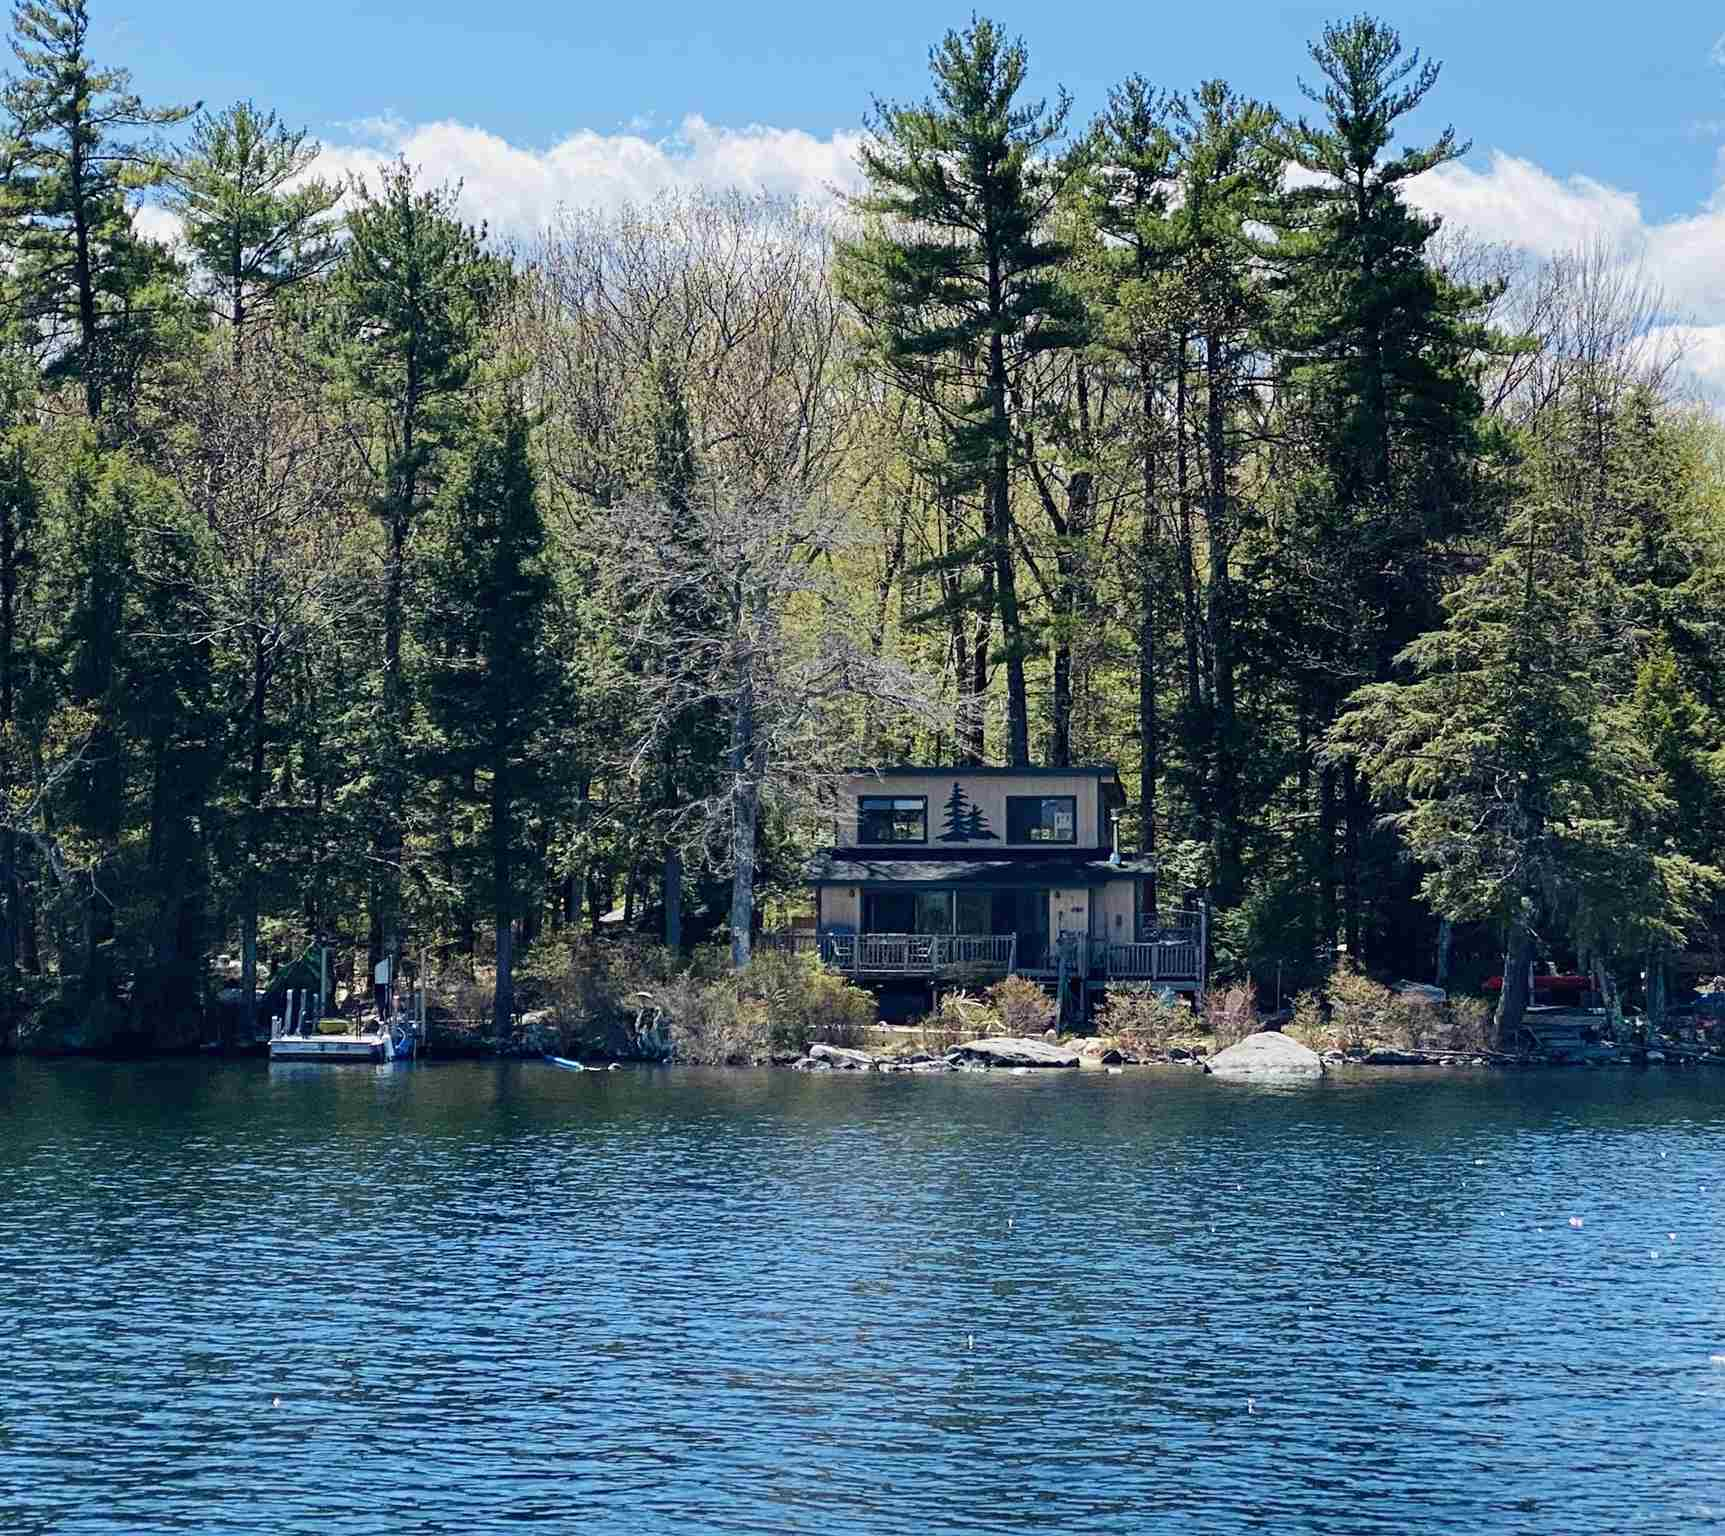 MLS 4859860: 2 Whortleberry Island, Tuftonboro NH